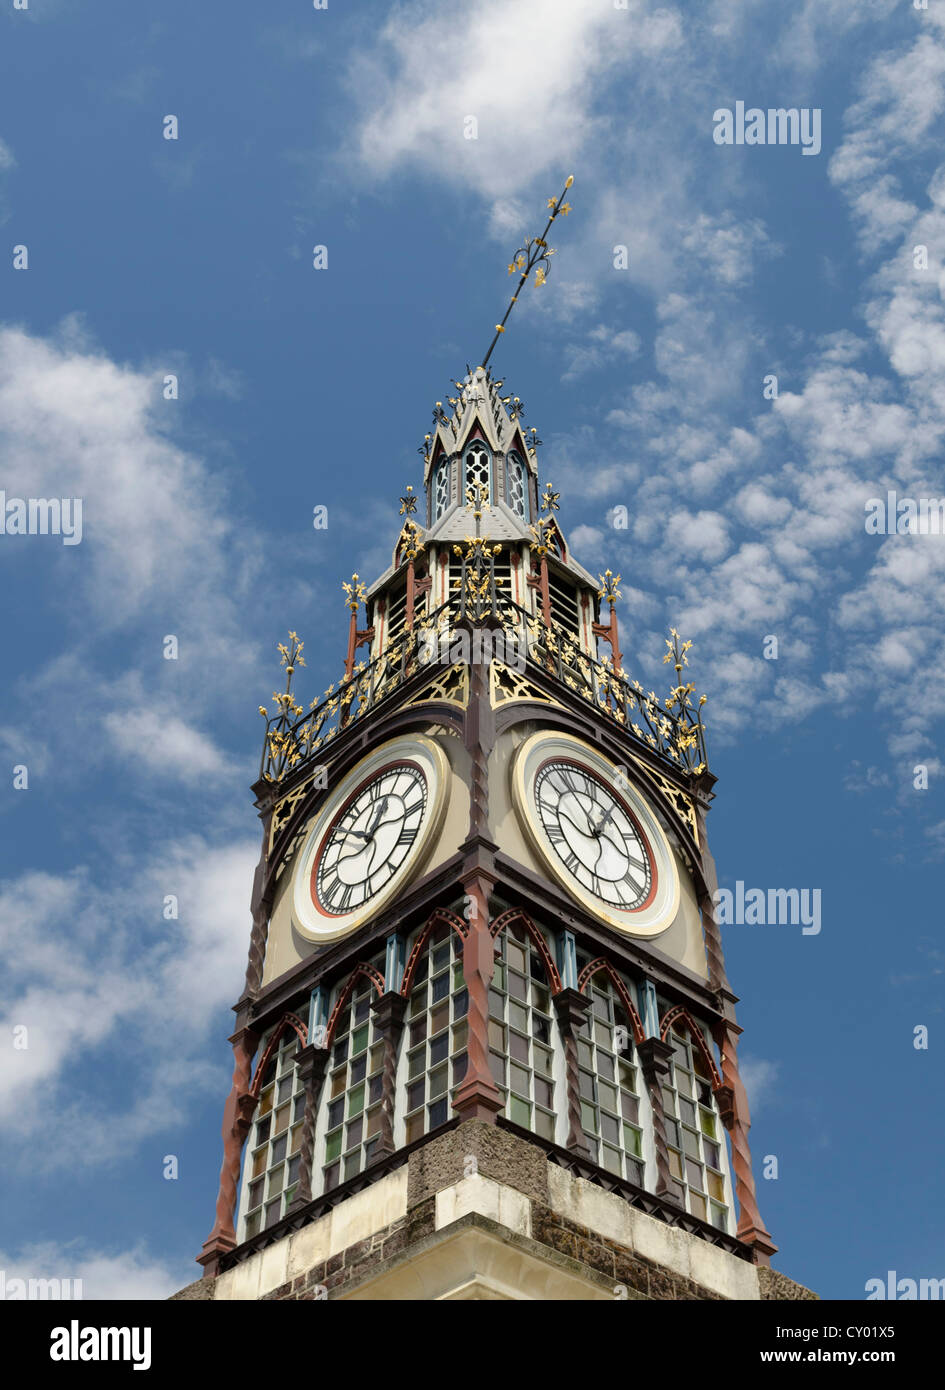 Bent spire, Victoria Clock Tower in the High Street, earthquake damage to the landmark of Christchurch, South Island - Stock Image